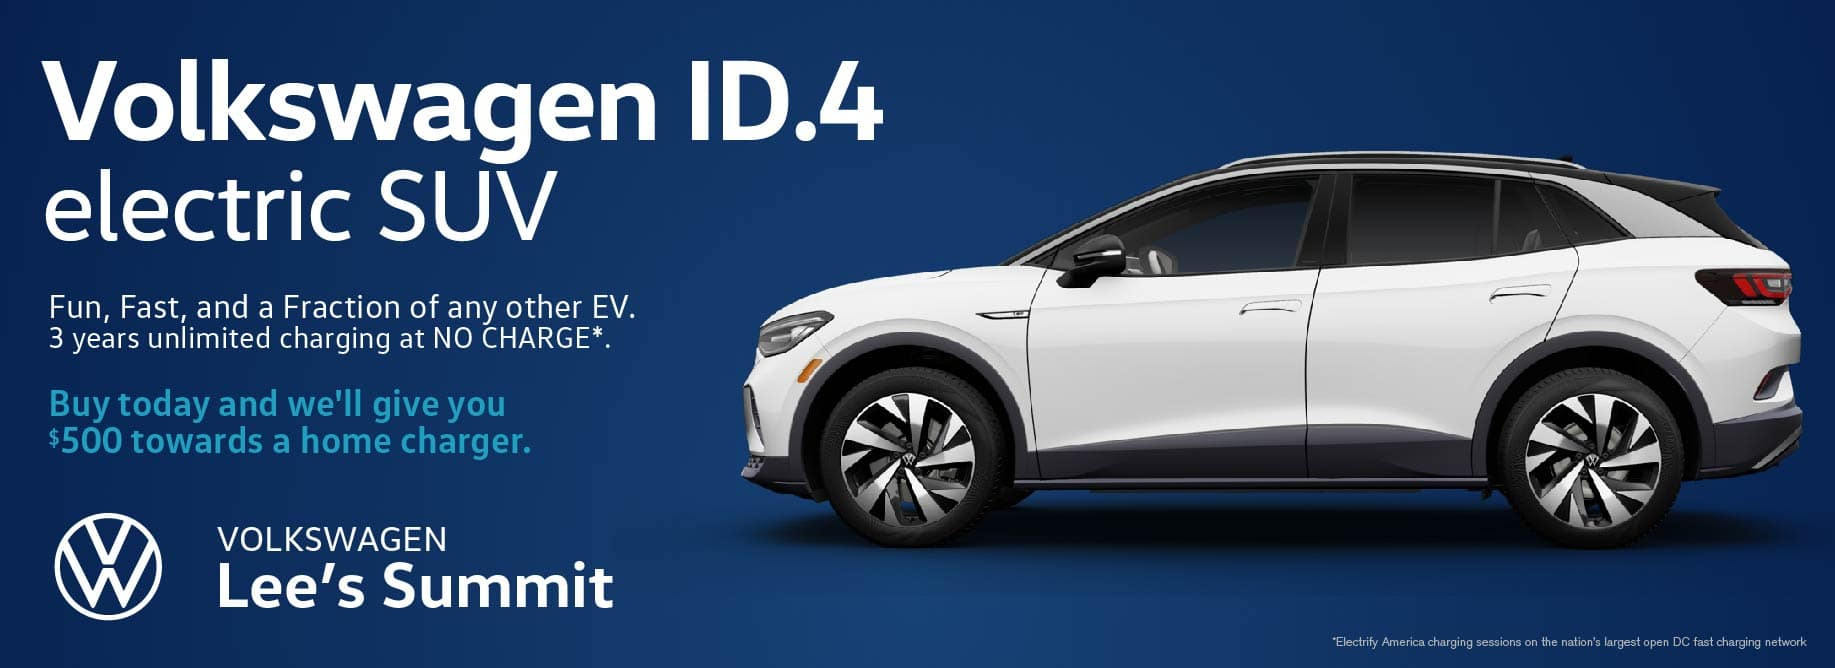 The electric vehicle for everyone is here. Reserve your ID.4 EV at Volkswagen Lee's Summit